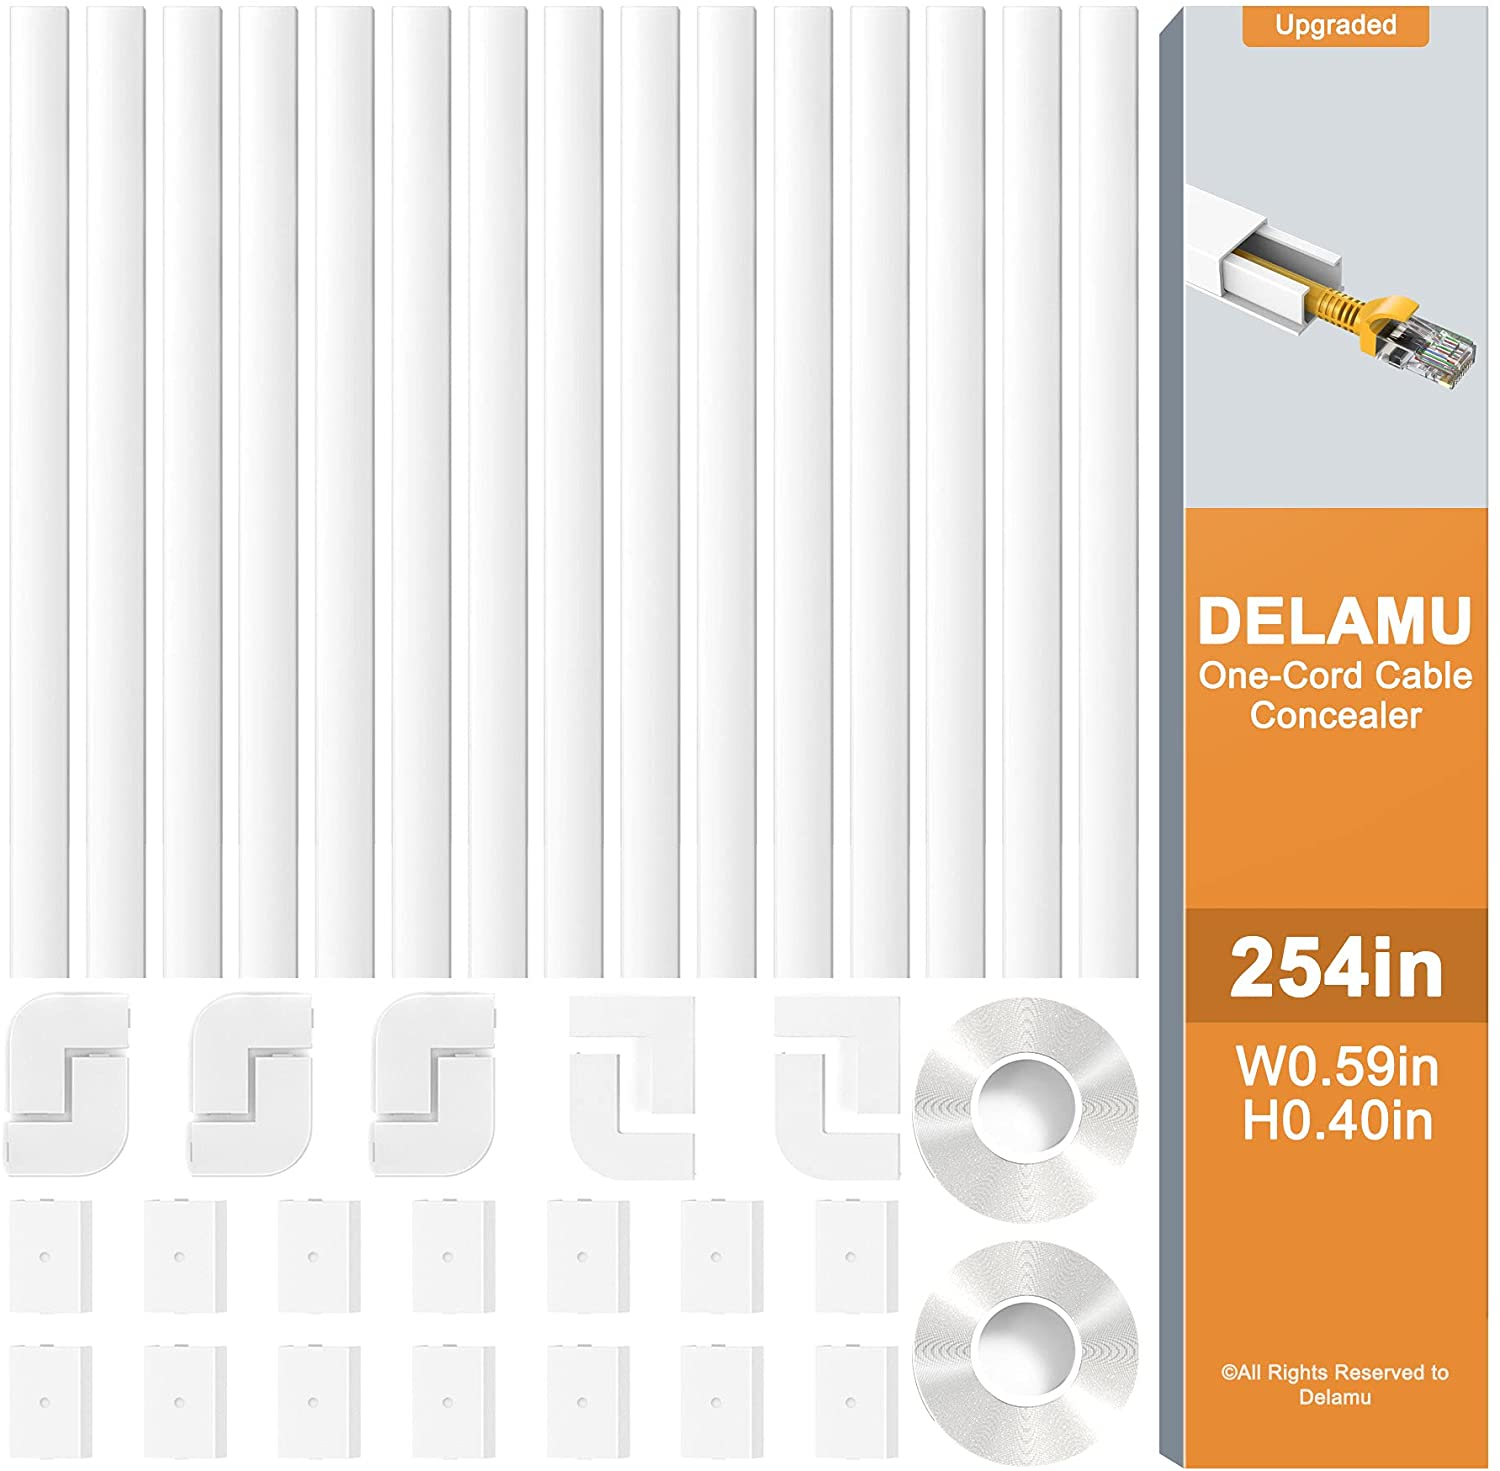 Cord Cover, Delamu 254in Cable Concealer, PVC Cord Hider on Wall, One-Cord Cable Raceway Cable Hider, Paintable Wire Hiders Cable Cover for Wall Mounted TV, 15x L16.9in W0.59in H0.4in, CC03-15Pack